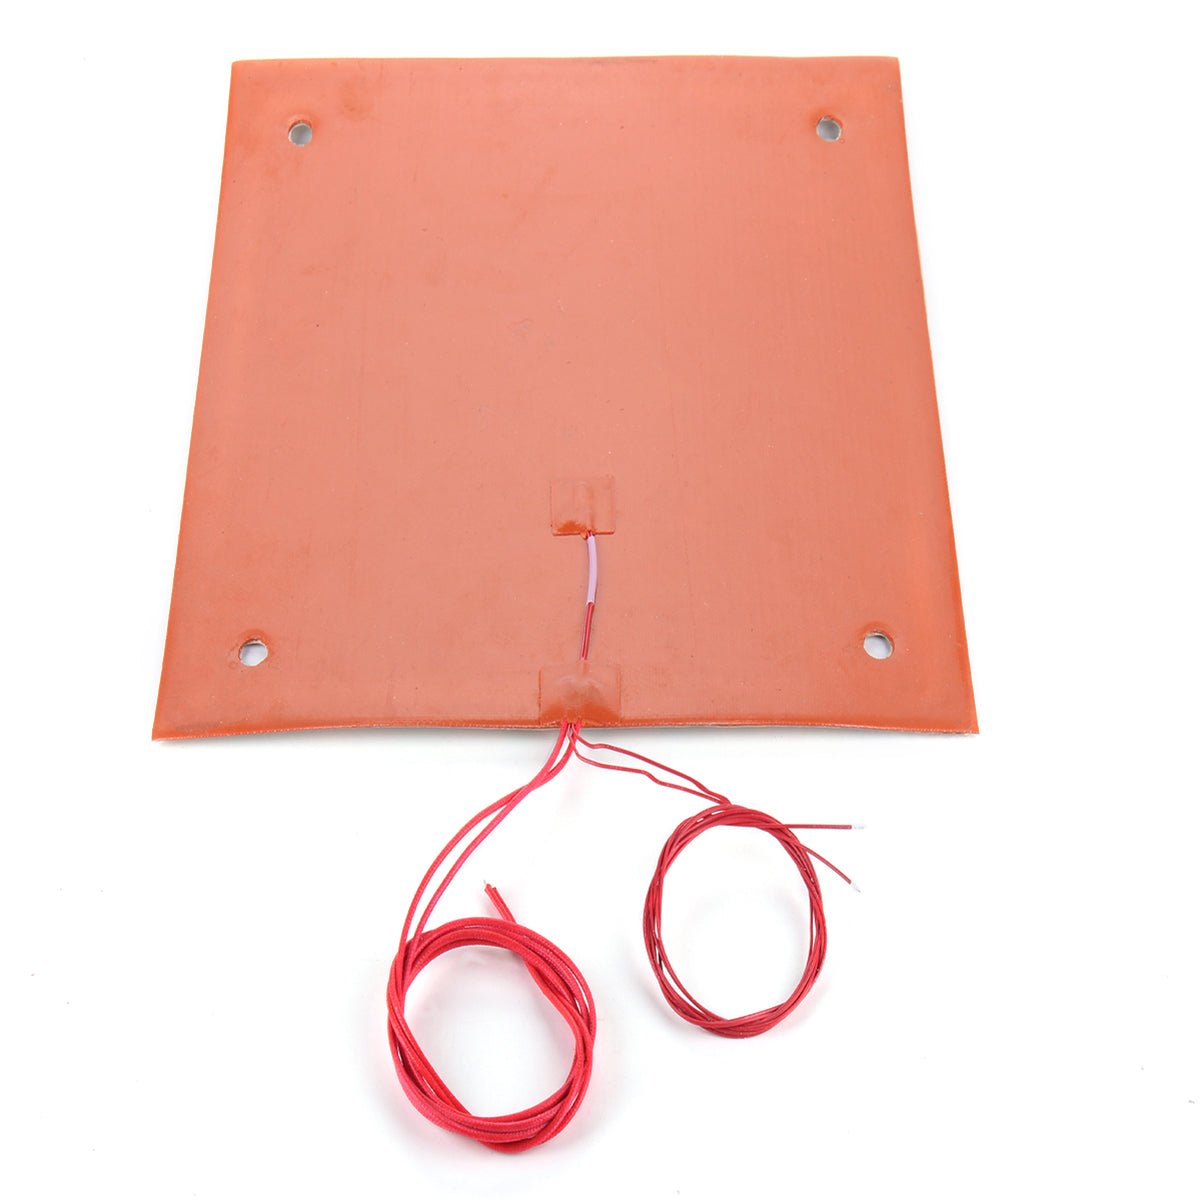 750w 120v/220v 310*310mm Silicone Heated Bed Heating Pad for CR-10 3D Printer